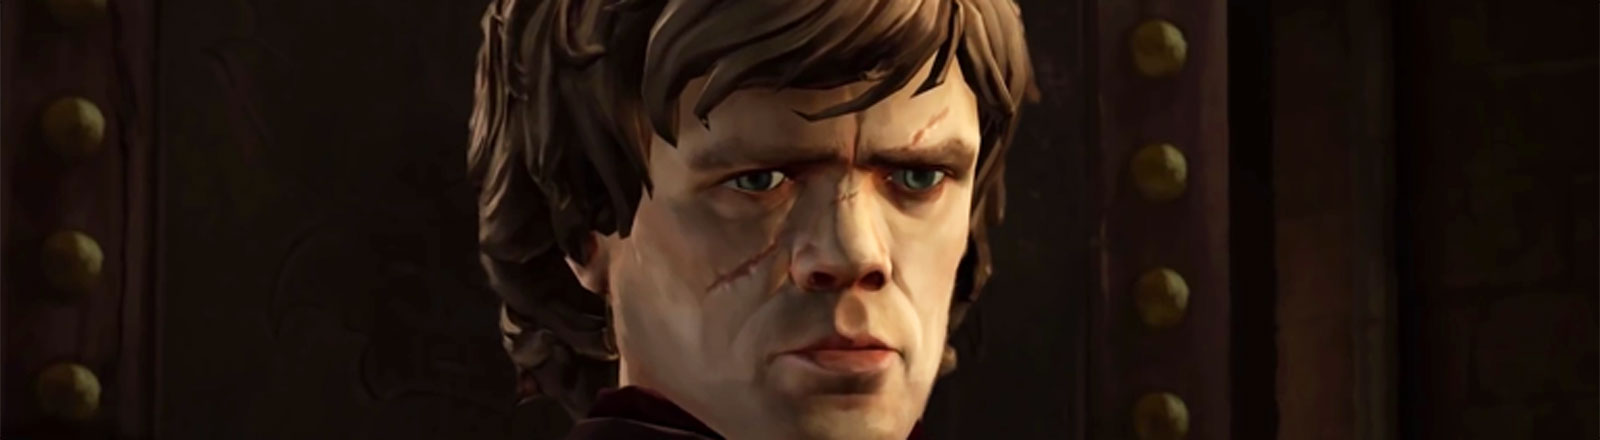 Computer animierte Figur aus Game of Thrones: Tyrion Lannister.